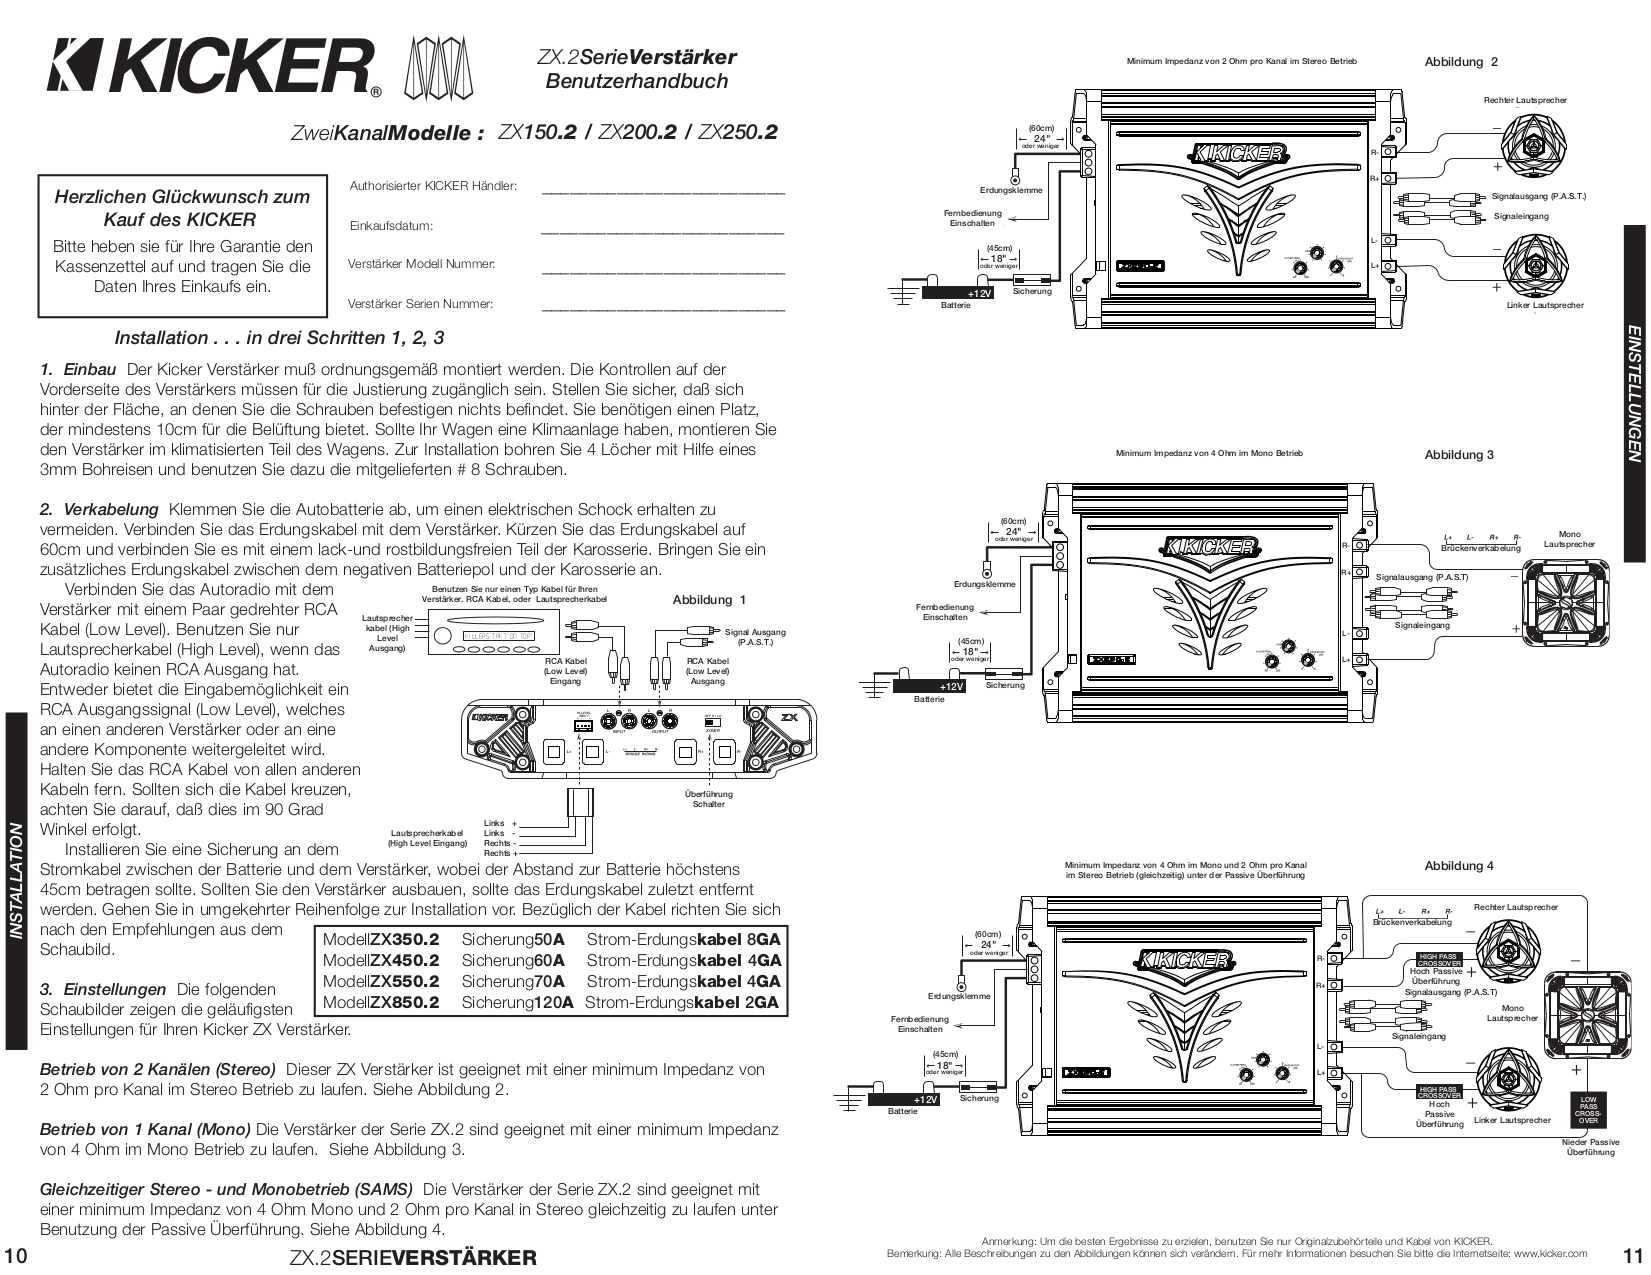 Kicker Pxa300 4 Wiring Diagram